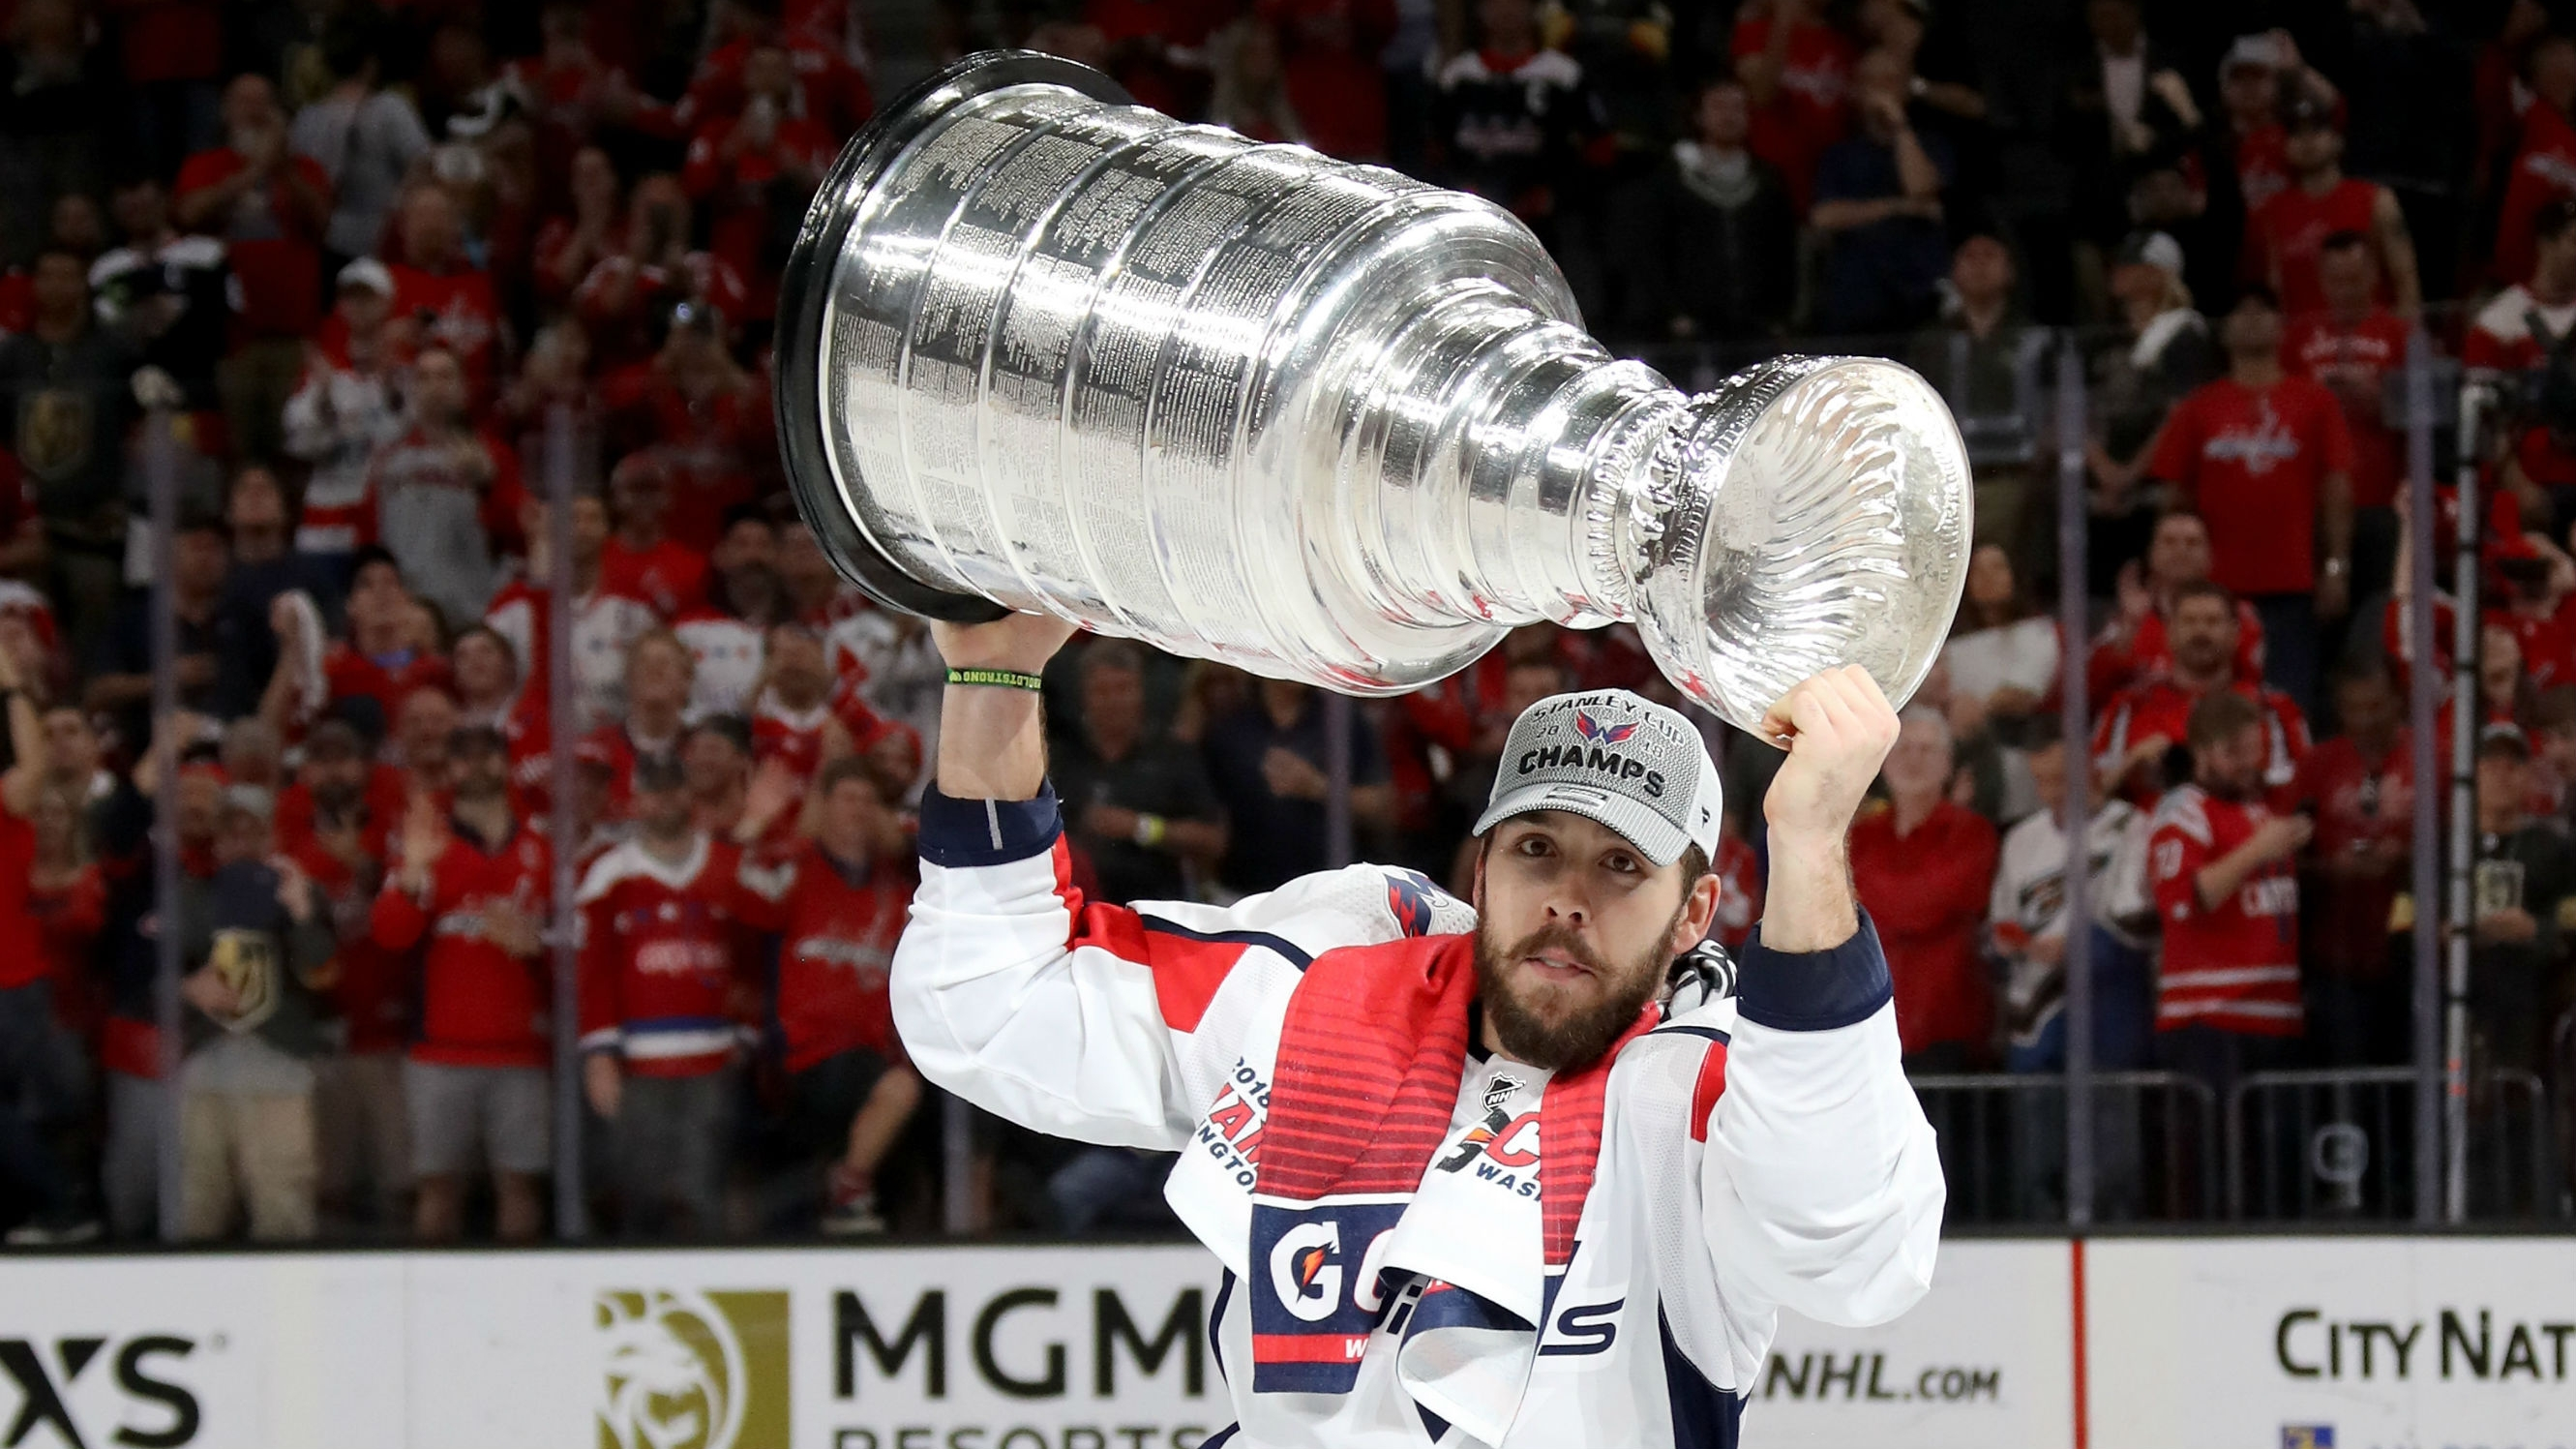 SJHL: Capitals' Chandler Stephenson To Bring Stanley Cup To Humboldt